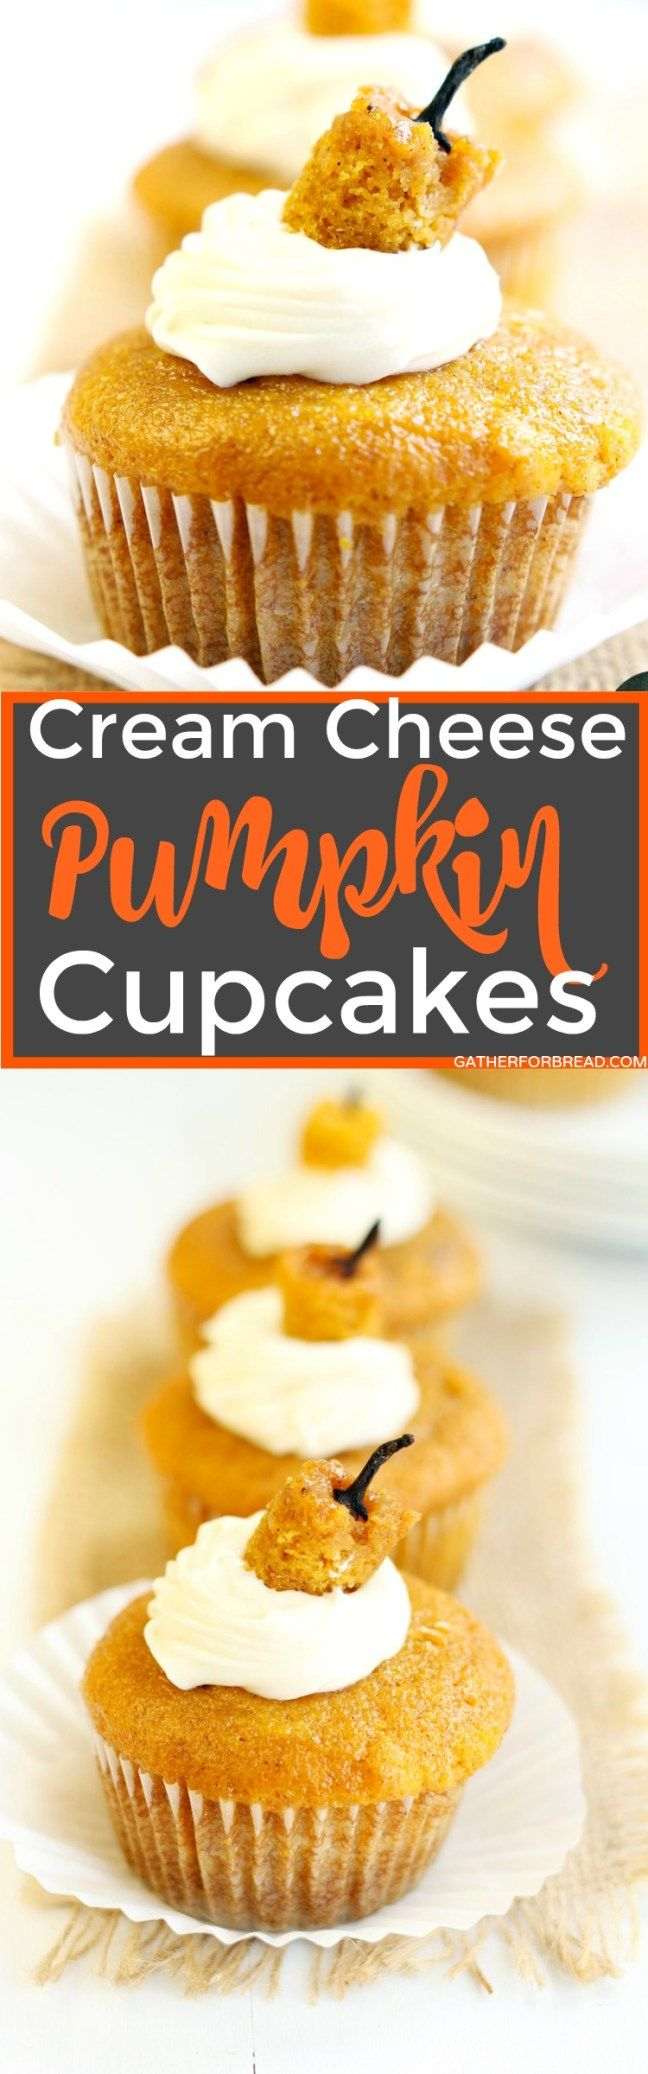 Cream Cheese Pumpkin Cupcakes - Moist homemade pumpkin cupcakes filled with an easy cream cheese frosting. These amazing pumpkin cupcakes are a perfect fall treat!